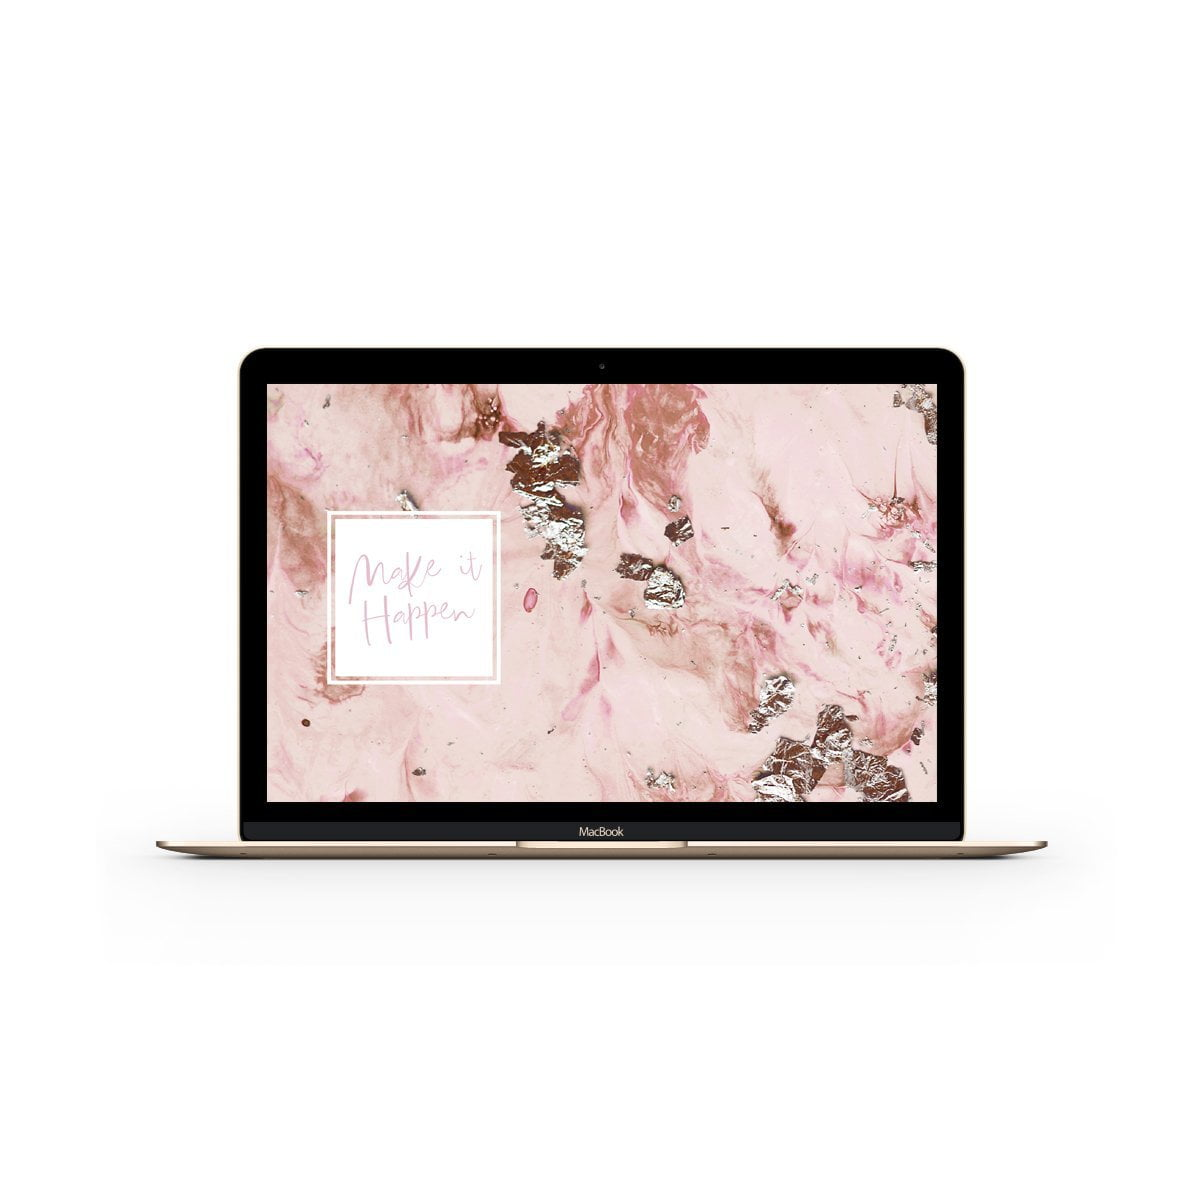 DESKTOP WALLPAPER ROSE GOLD